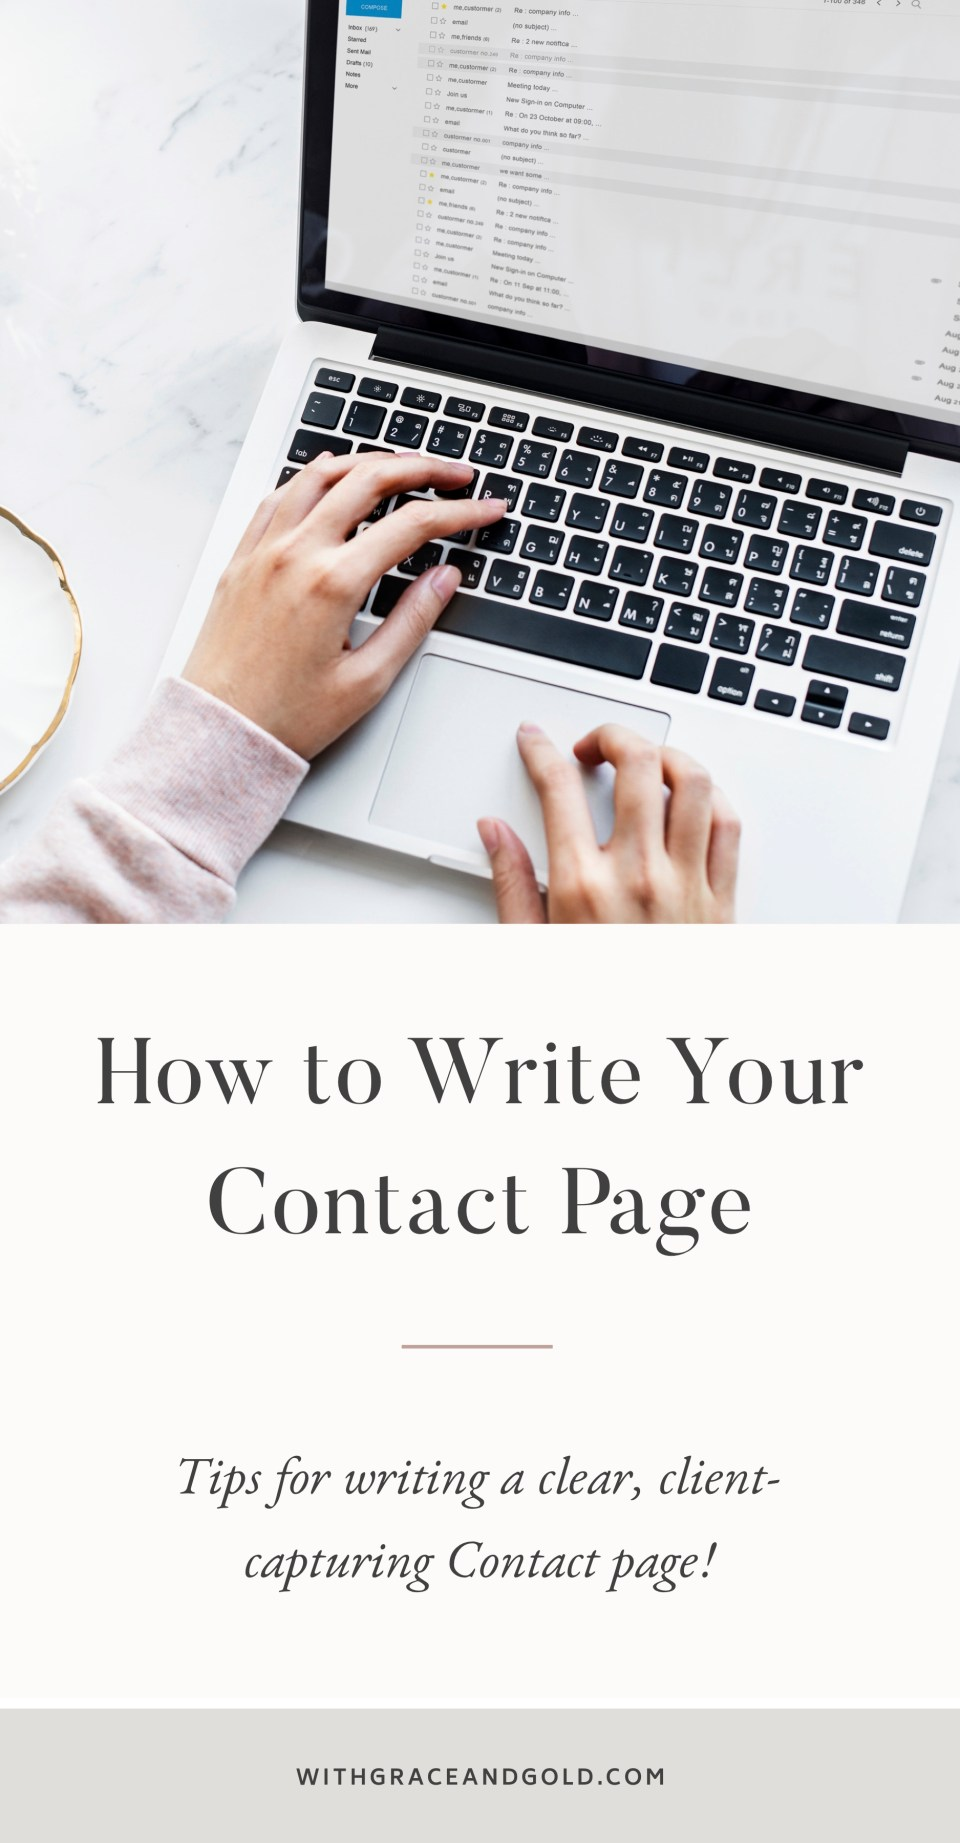 How to Write Your Contact Page by With Grace and Gold